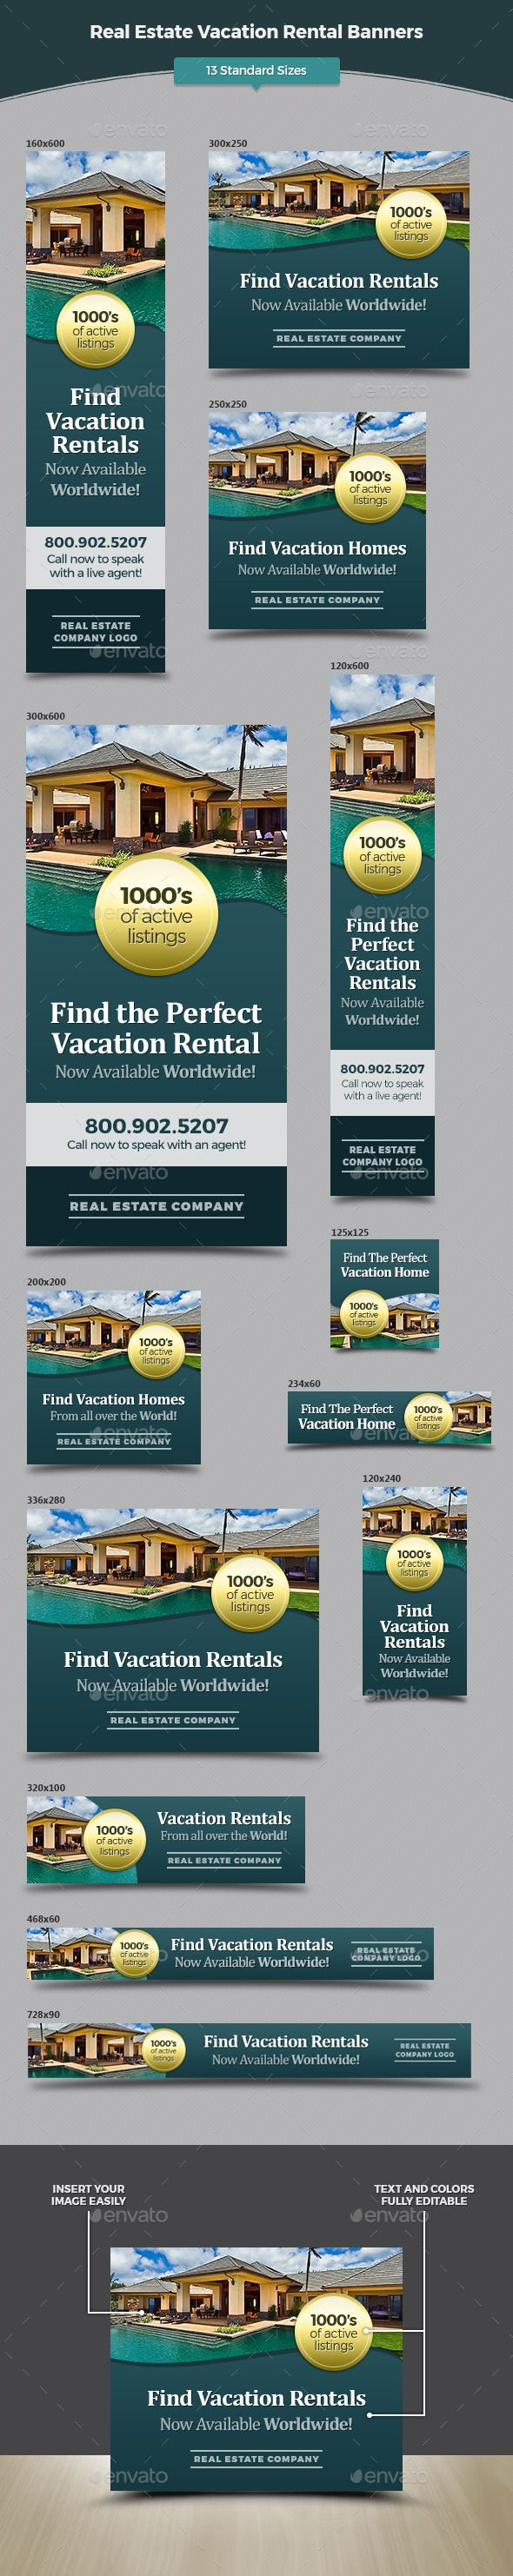 Real Estate Vacation Rental Banners Template #design #ads Download: http://graphicriver.net/item/real-estate-vacation-rental-banners/12741106?ref=ksioks